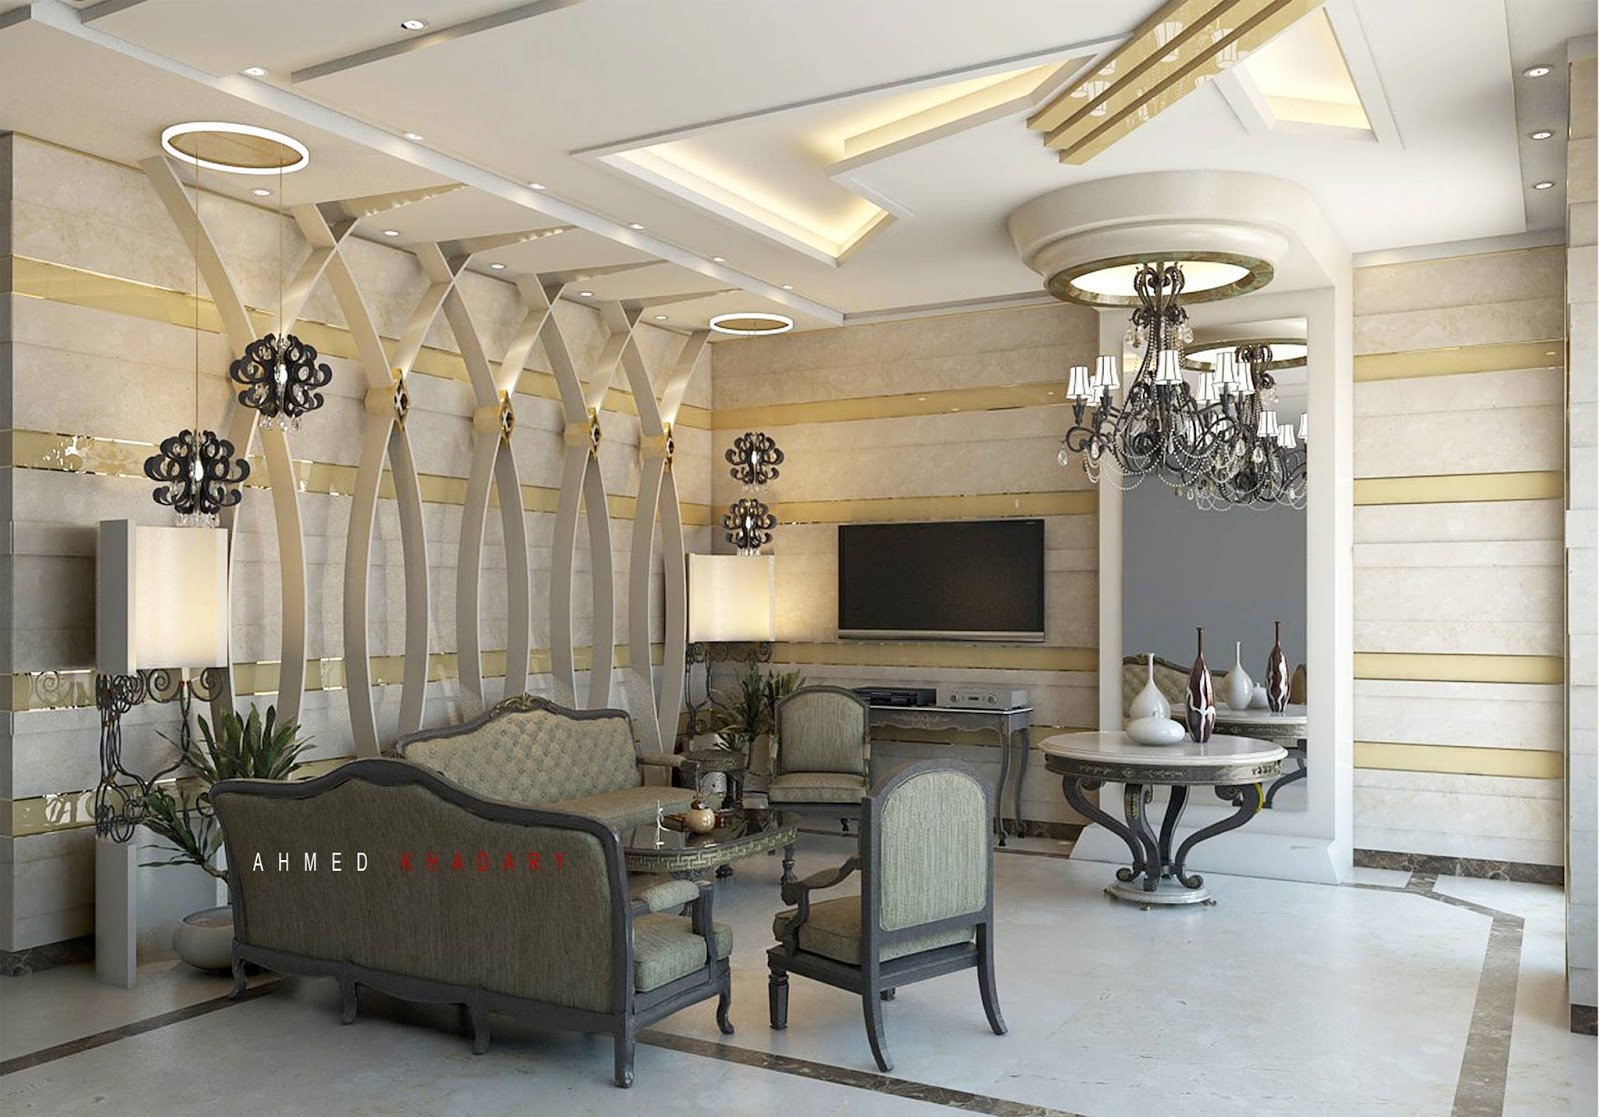 Banquet hall reception area download 3d house - Free Sketchup Model Vray Setting Reception Hall